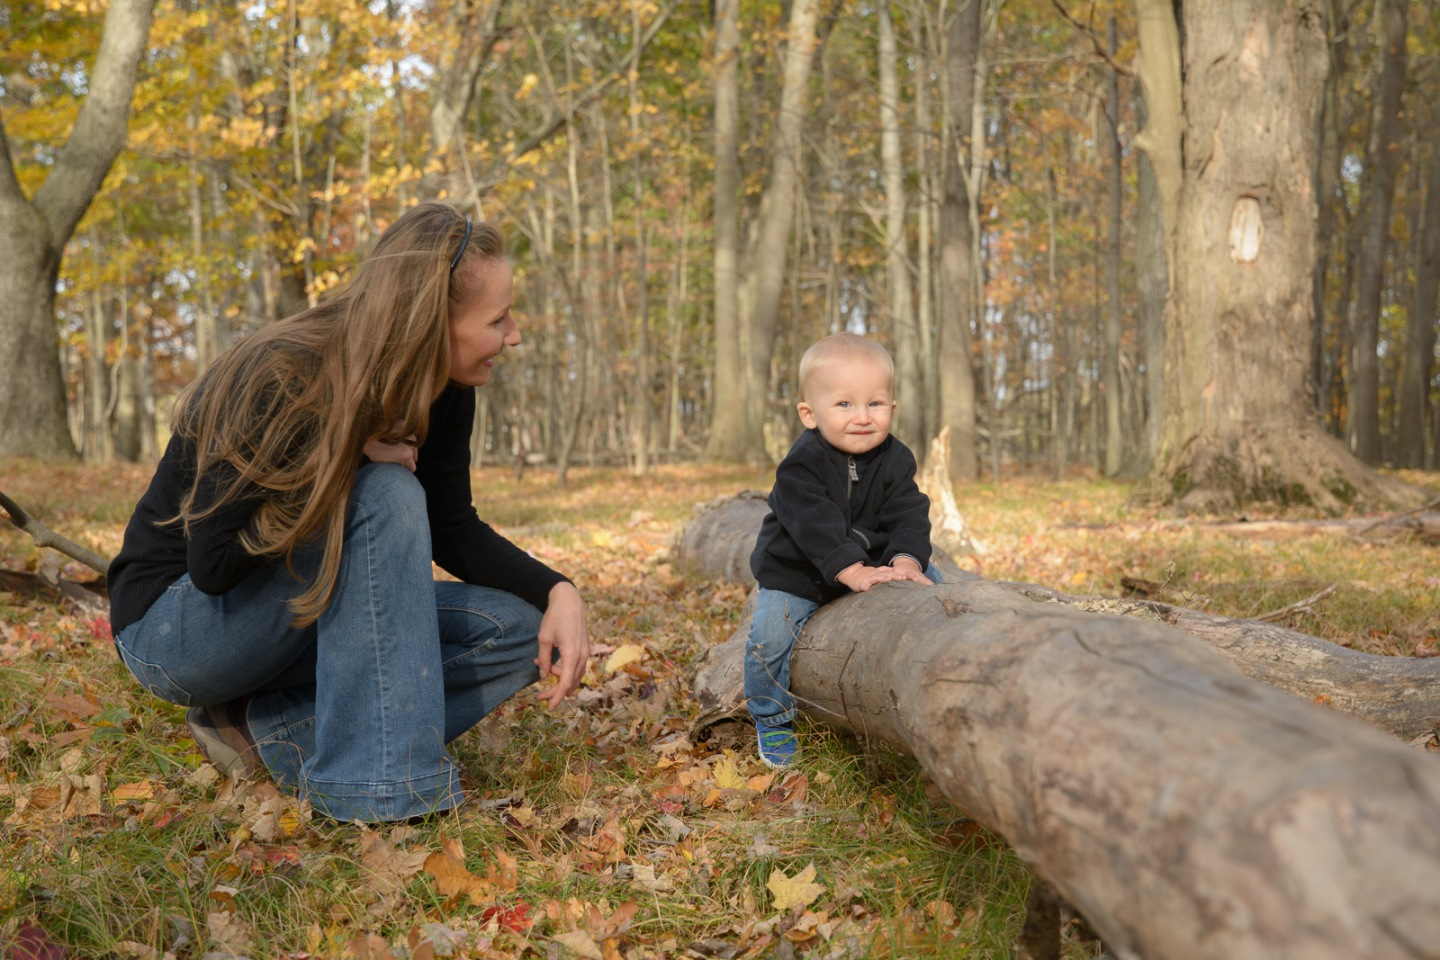 Mother and son in woods with son on fallen tree